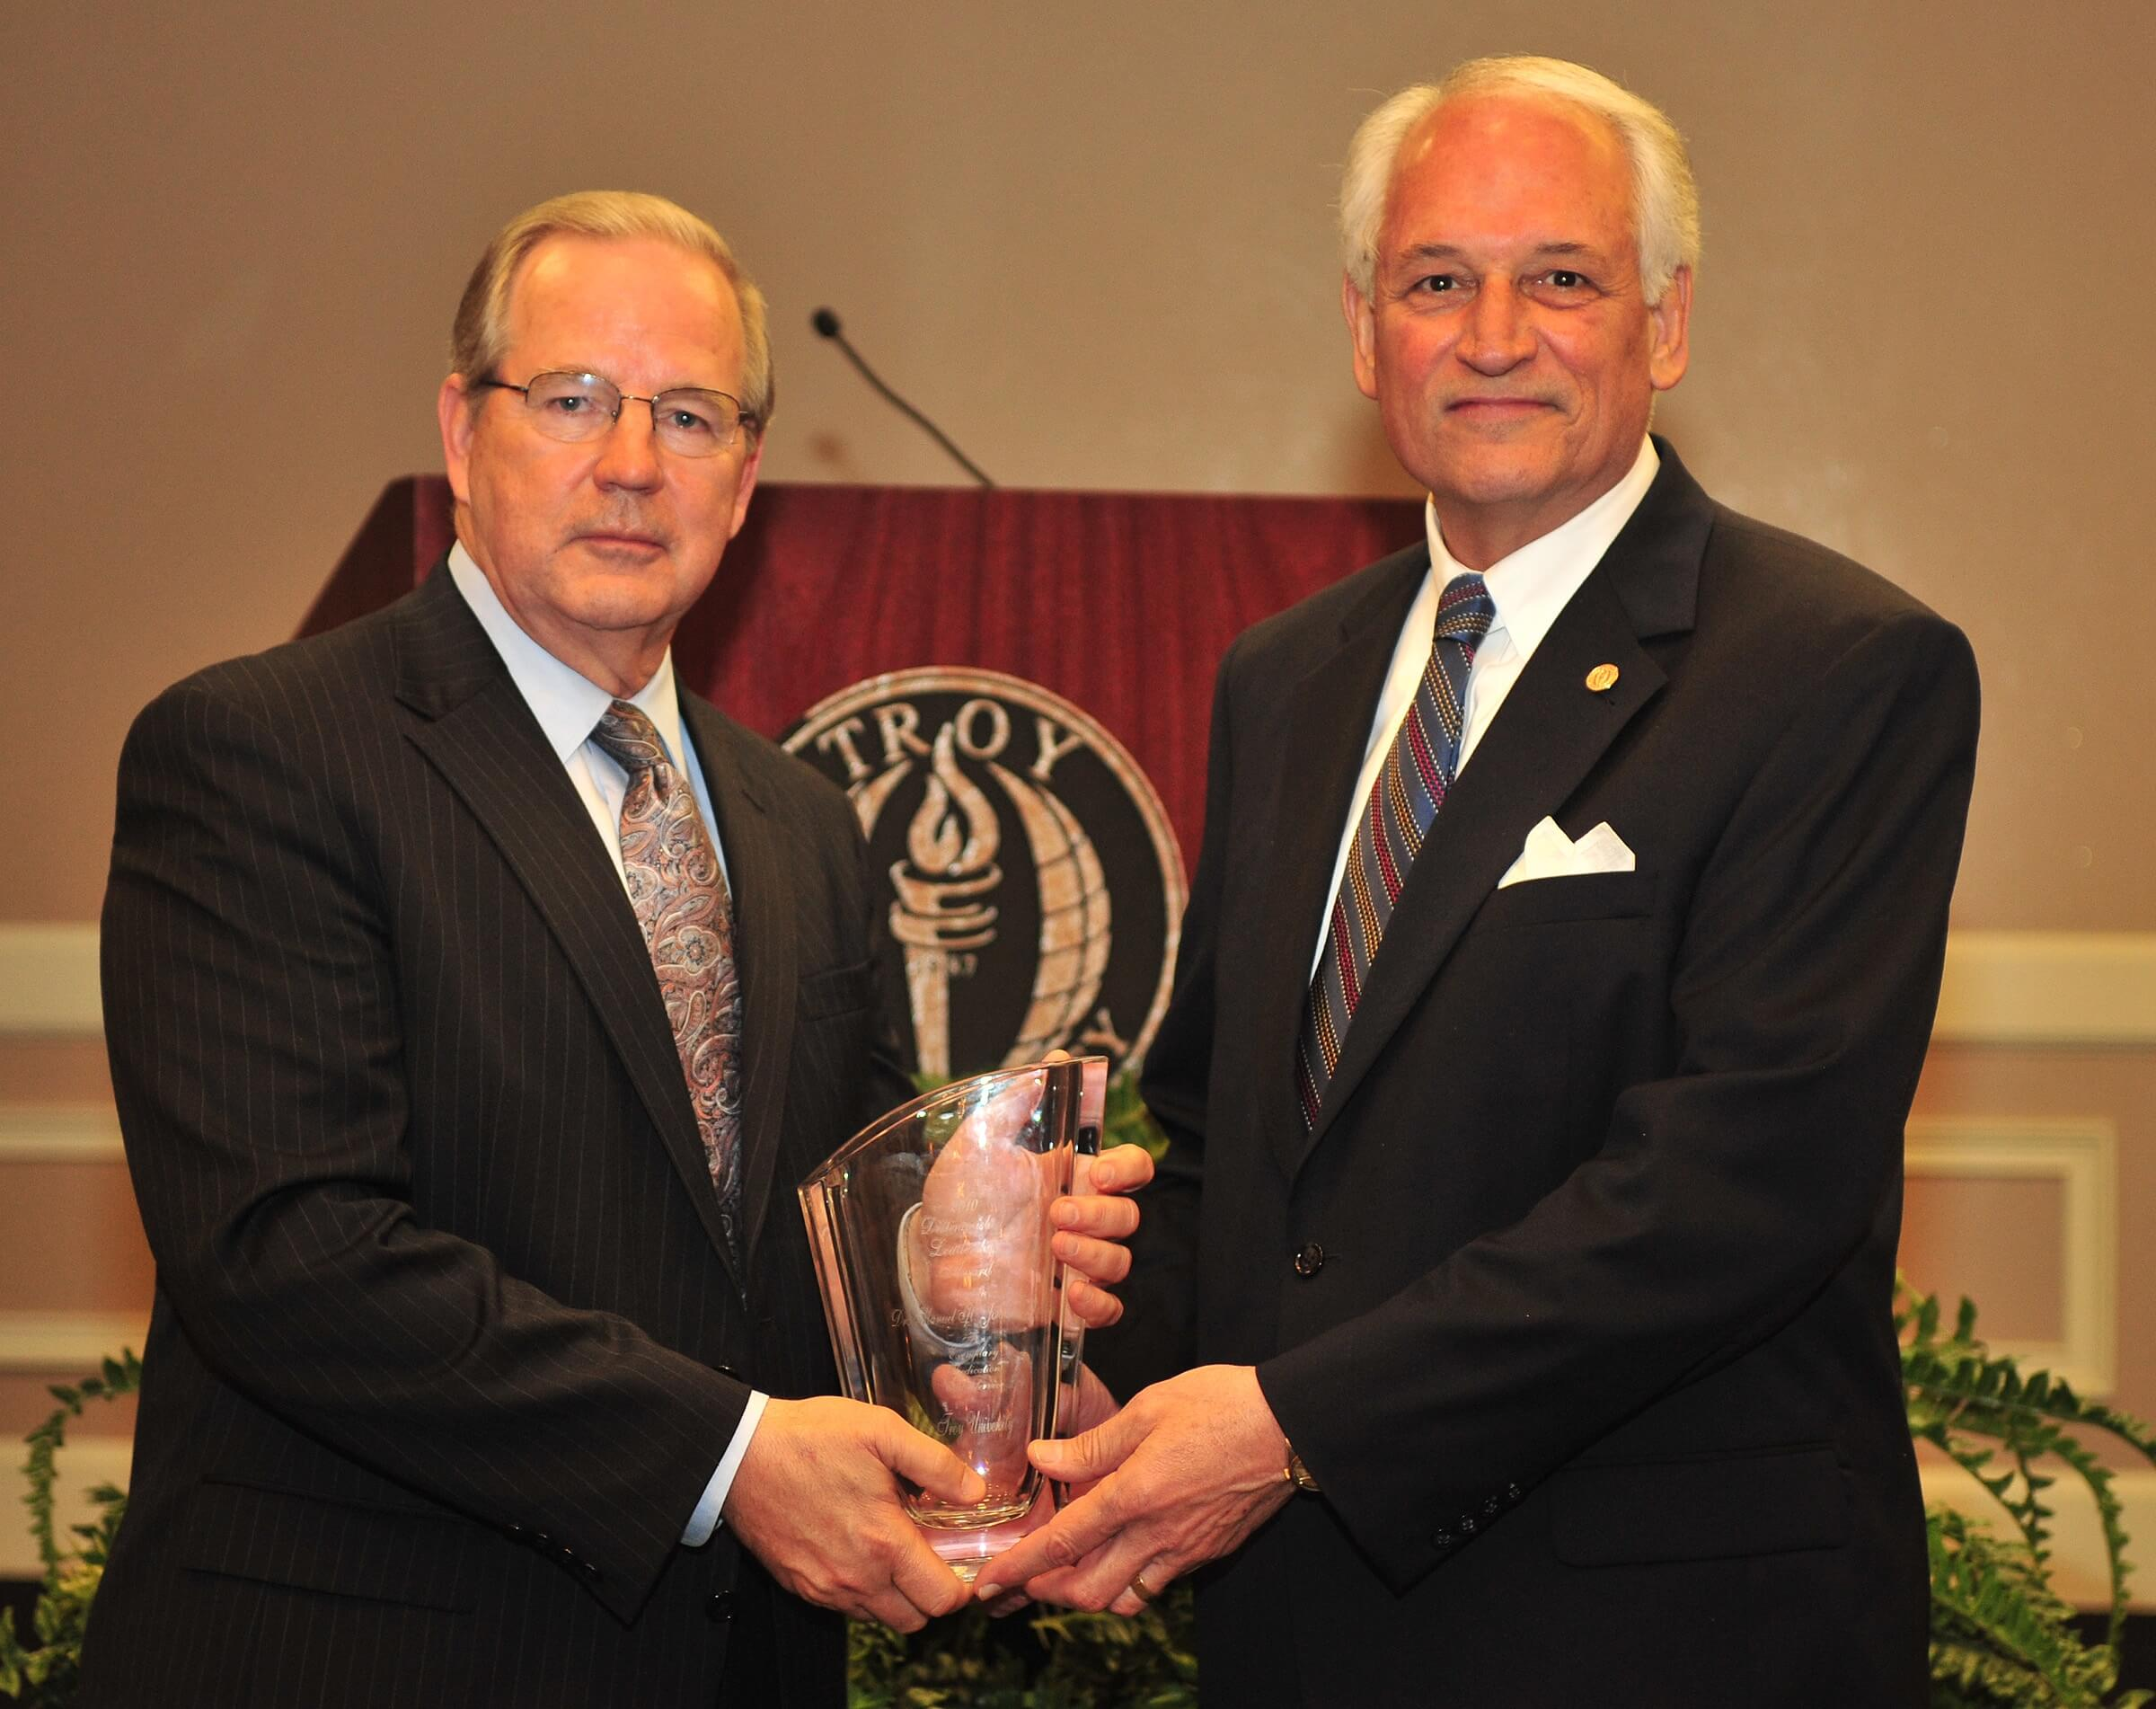 Chancellor Hawkins presents the 2010 Distinguished Leadership Award to Dr. Manley Johnson.